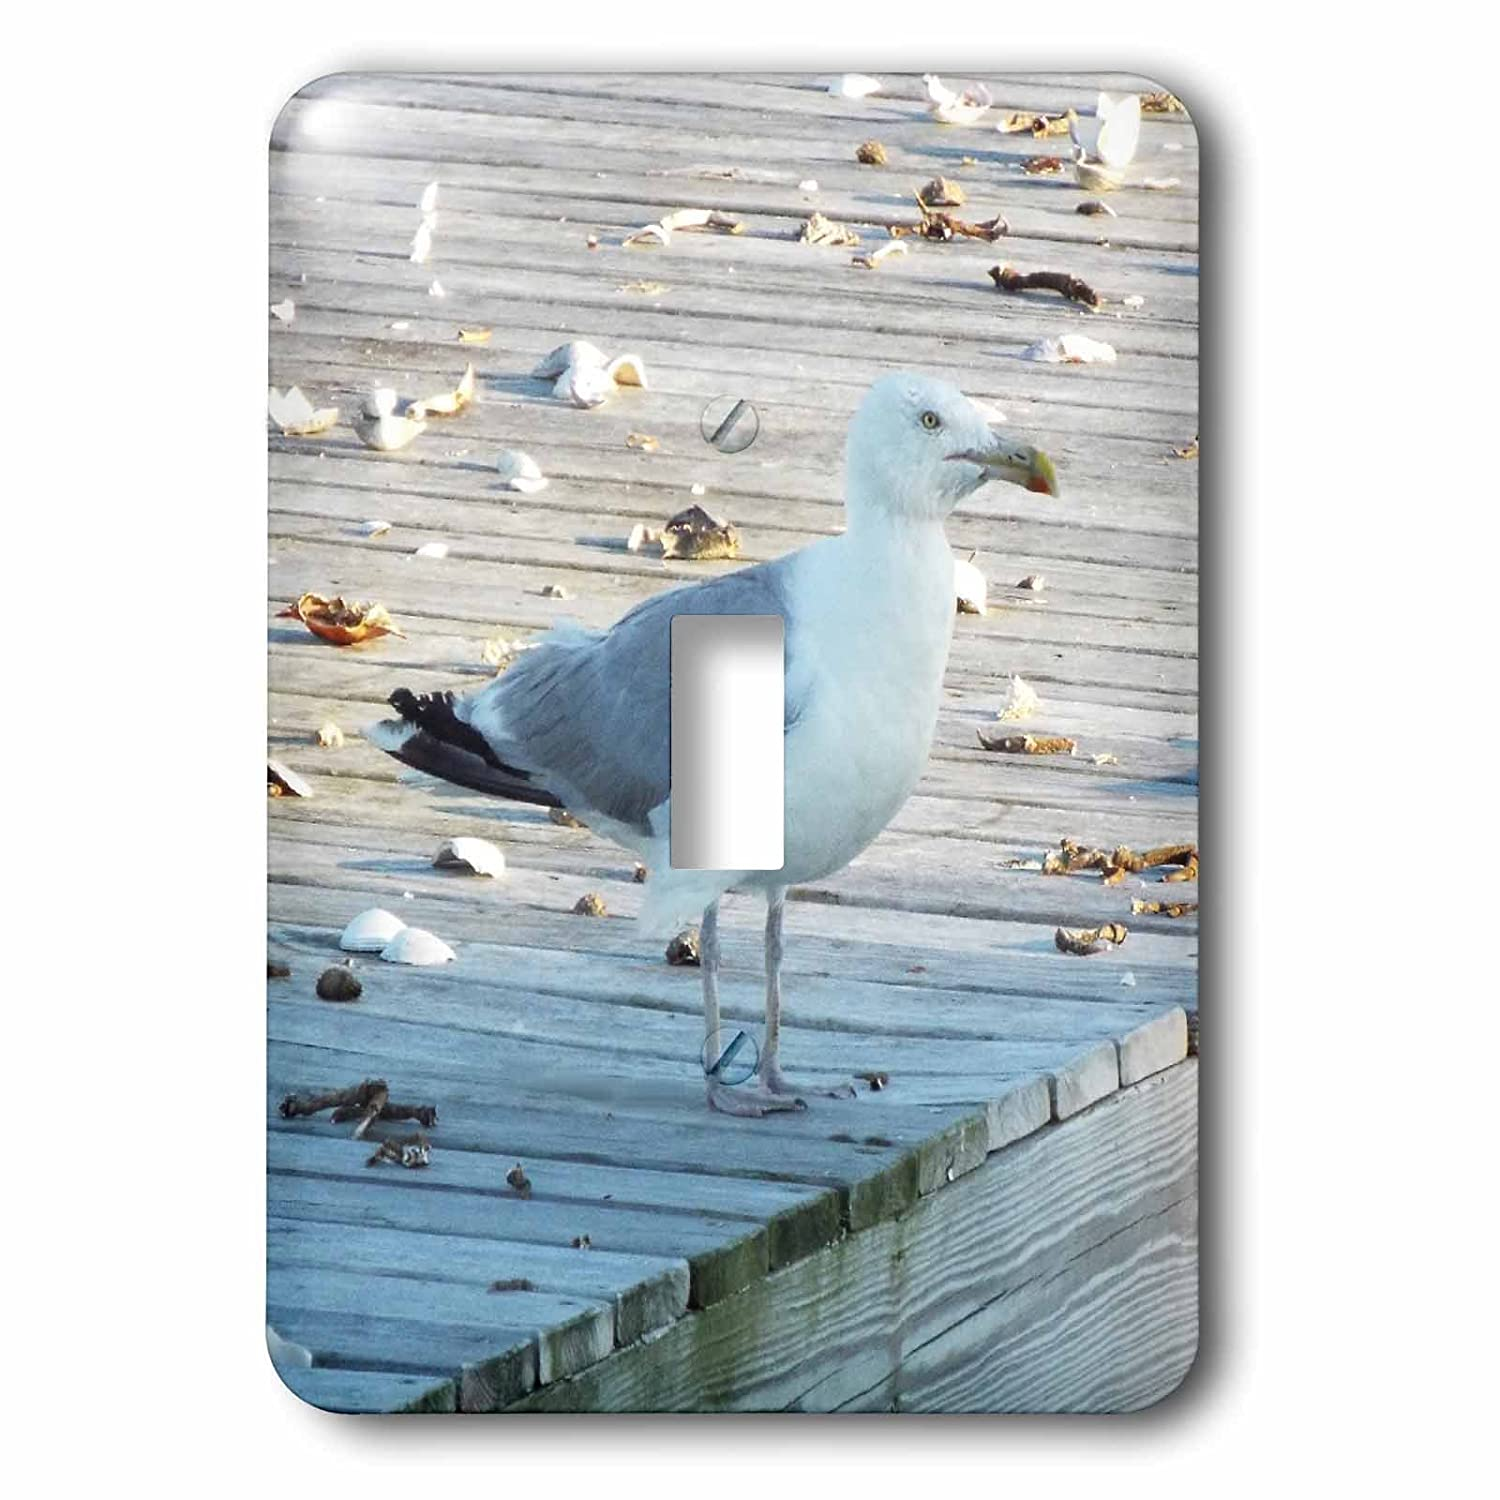 3dローズLSP_ 165209_ Of 1 Seagull 3dローズLSP Standing On The The Dock Of The bay-single切り替えスイッチ B00GYC2KG0, pipi:af9360eb --- gamenavi.club